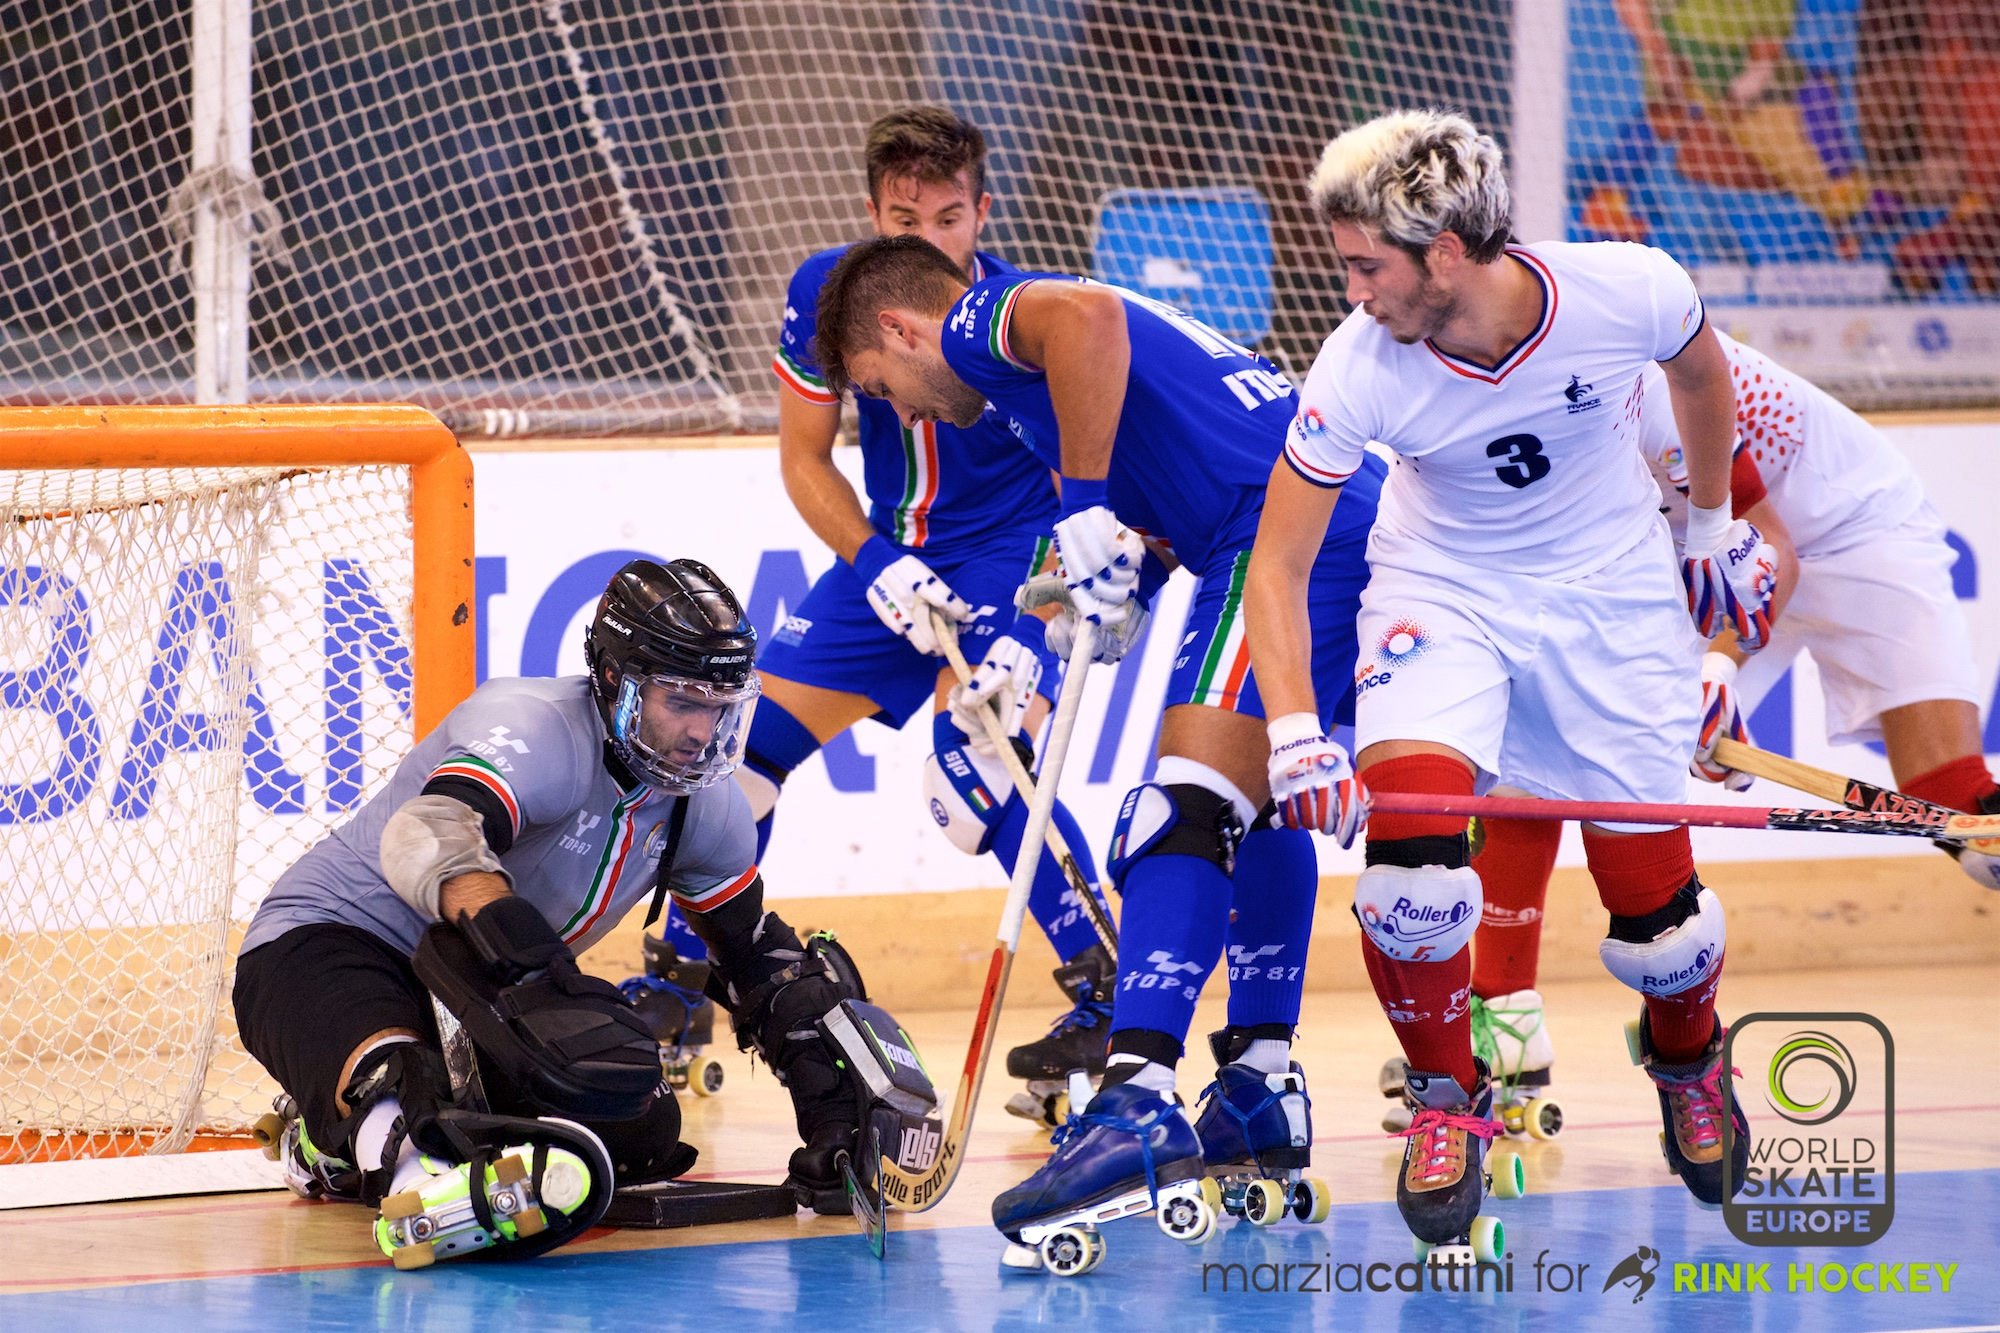 PHOTOS – 22/07/2018 - EUROHOCKEY CORUNA 2018 - Match #39 - France x Italy – Photos by Marzia Cattini